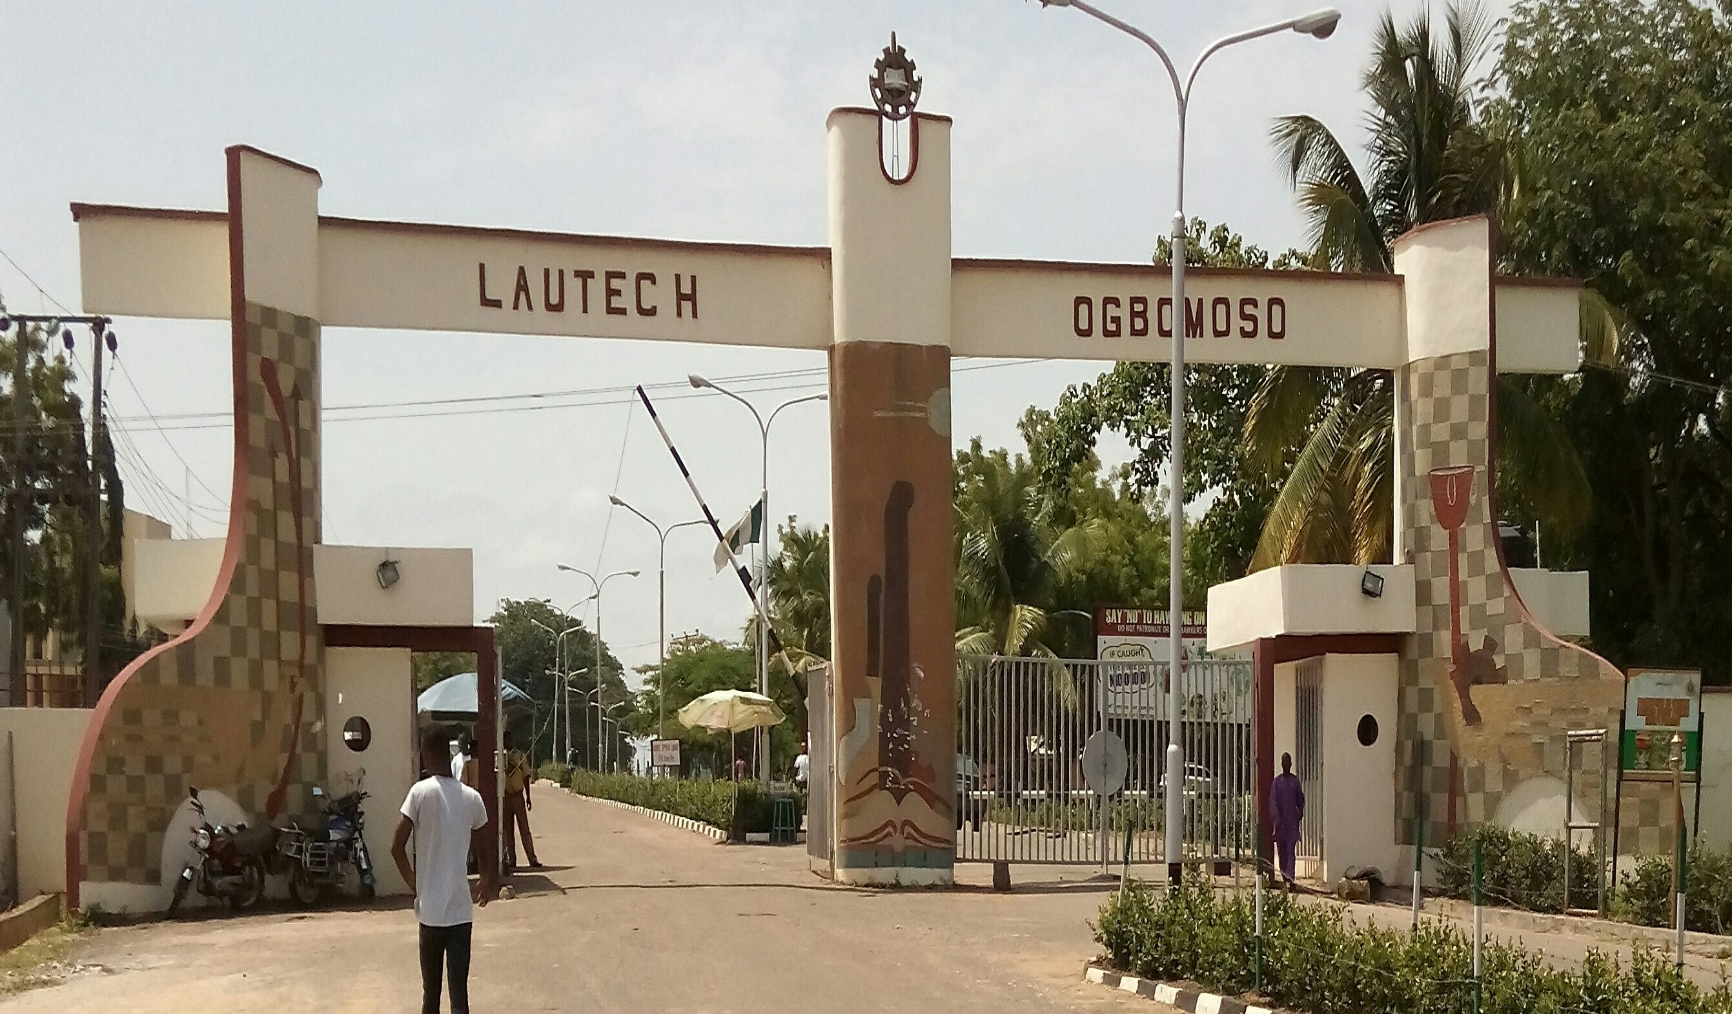 FW: LAUTECH students to protest school crisis in Abuja